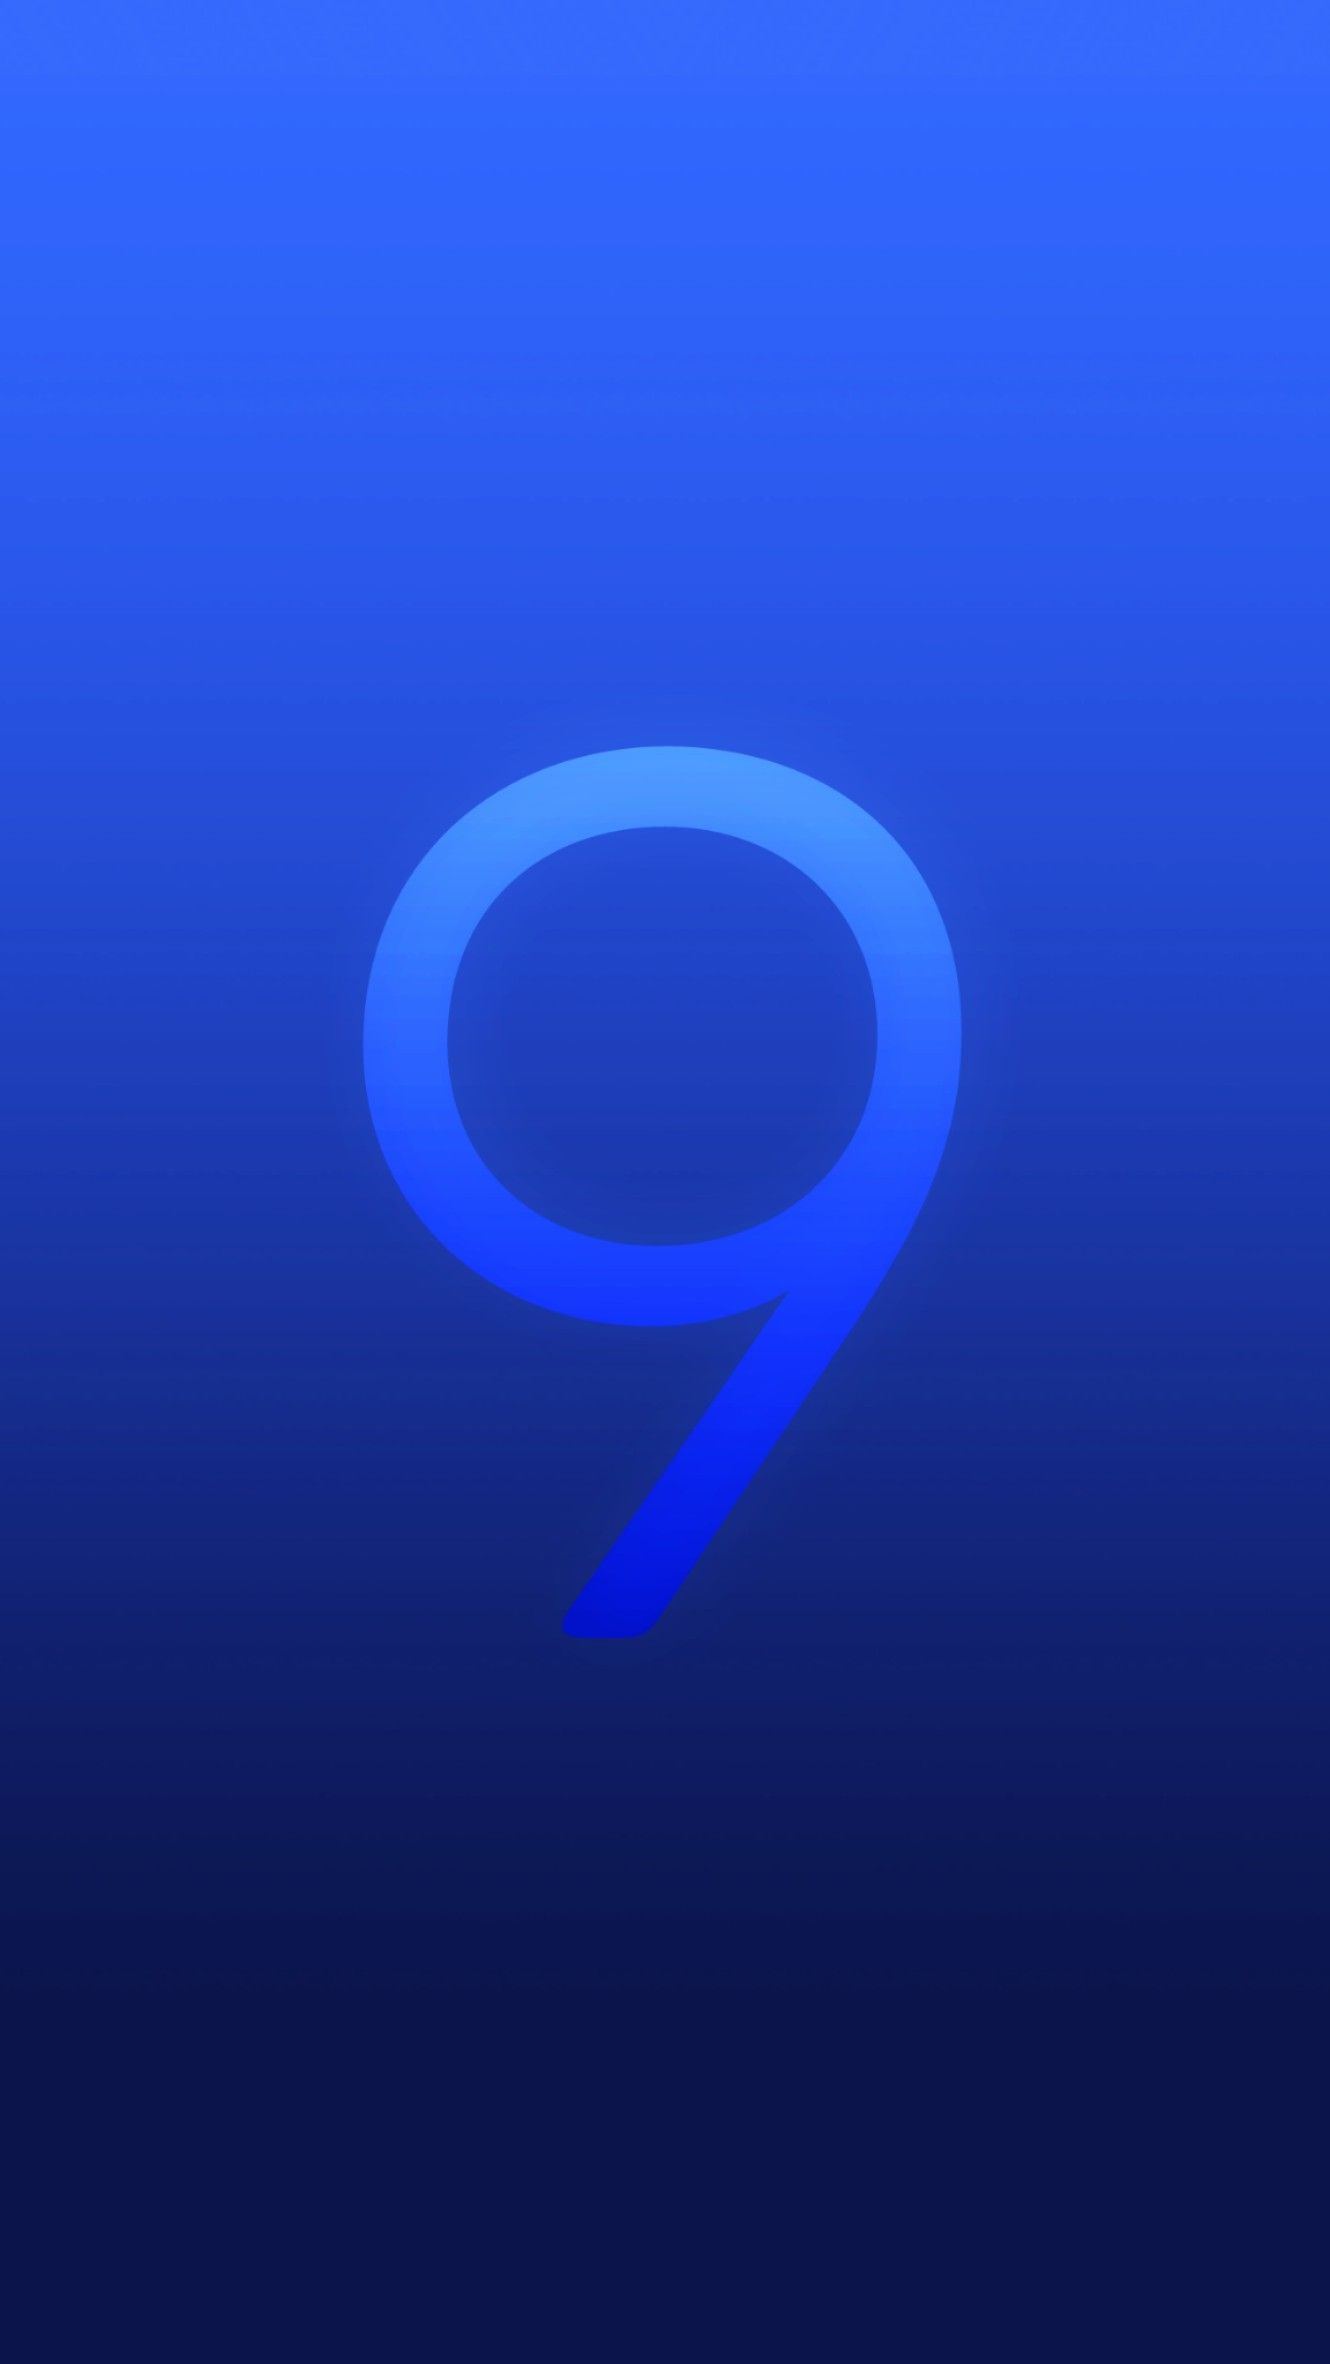 Samsung S9 Wallpapers Top Free Samsung S9 Backgrounds Wallpaperaccess